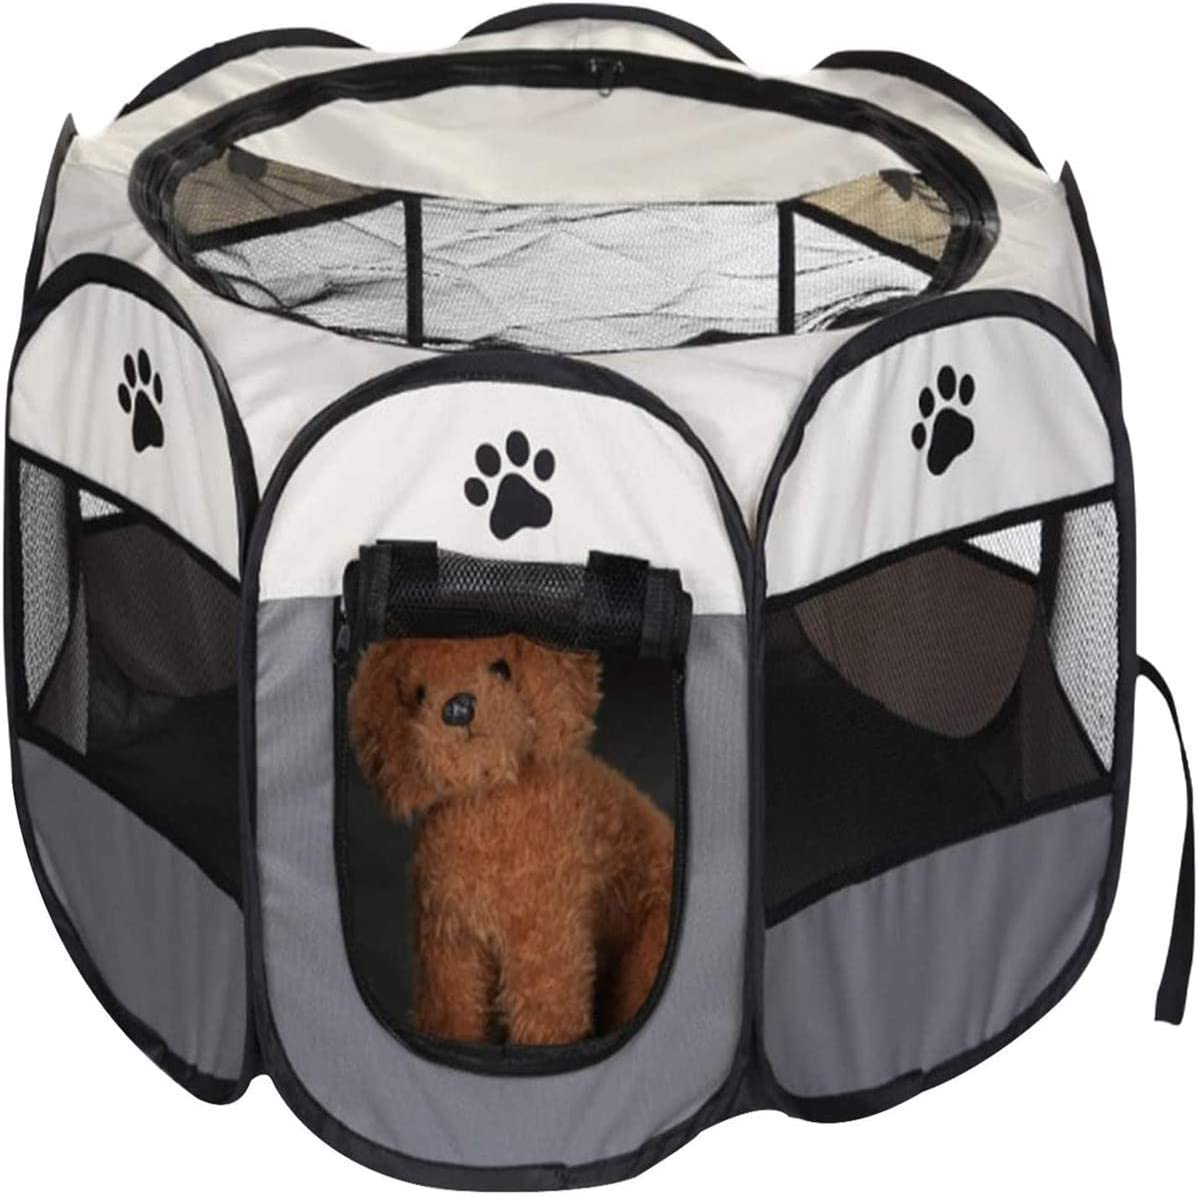 Dog playpen Foldable Puppy Playpen Pop Free shipping New Pet Recommendation Carrier Up